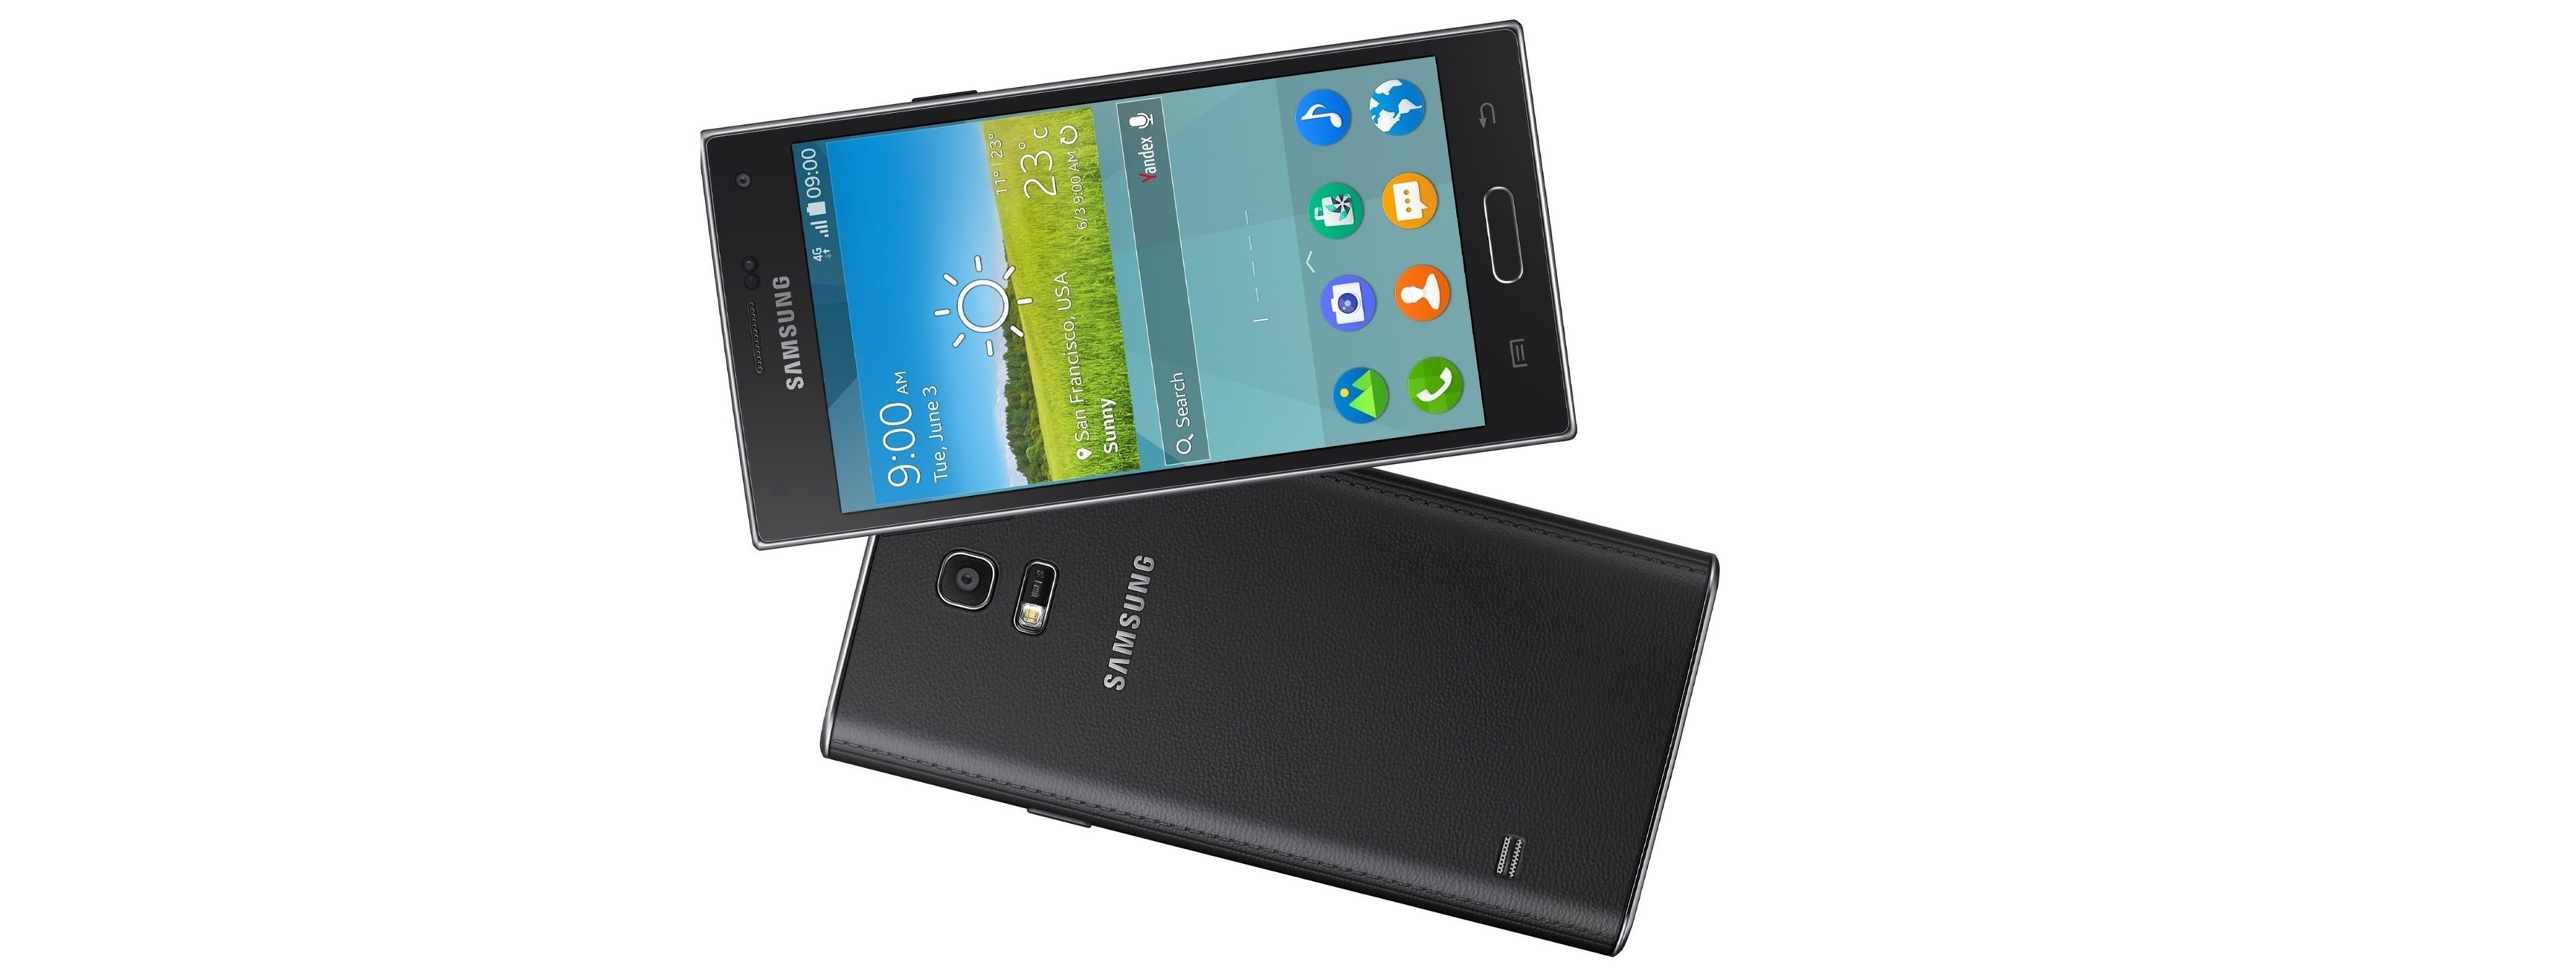 Samsung Launches World's First Tizen Smartphone